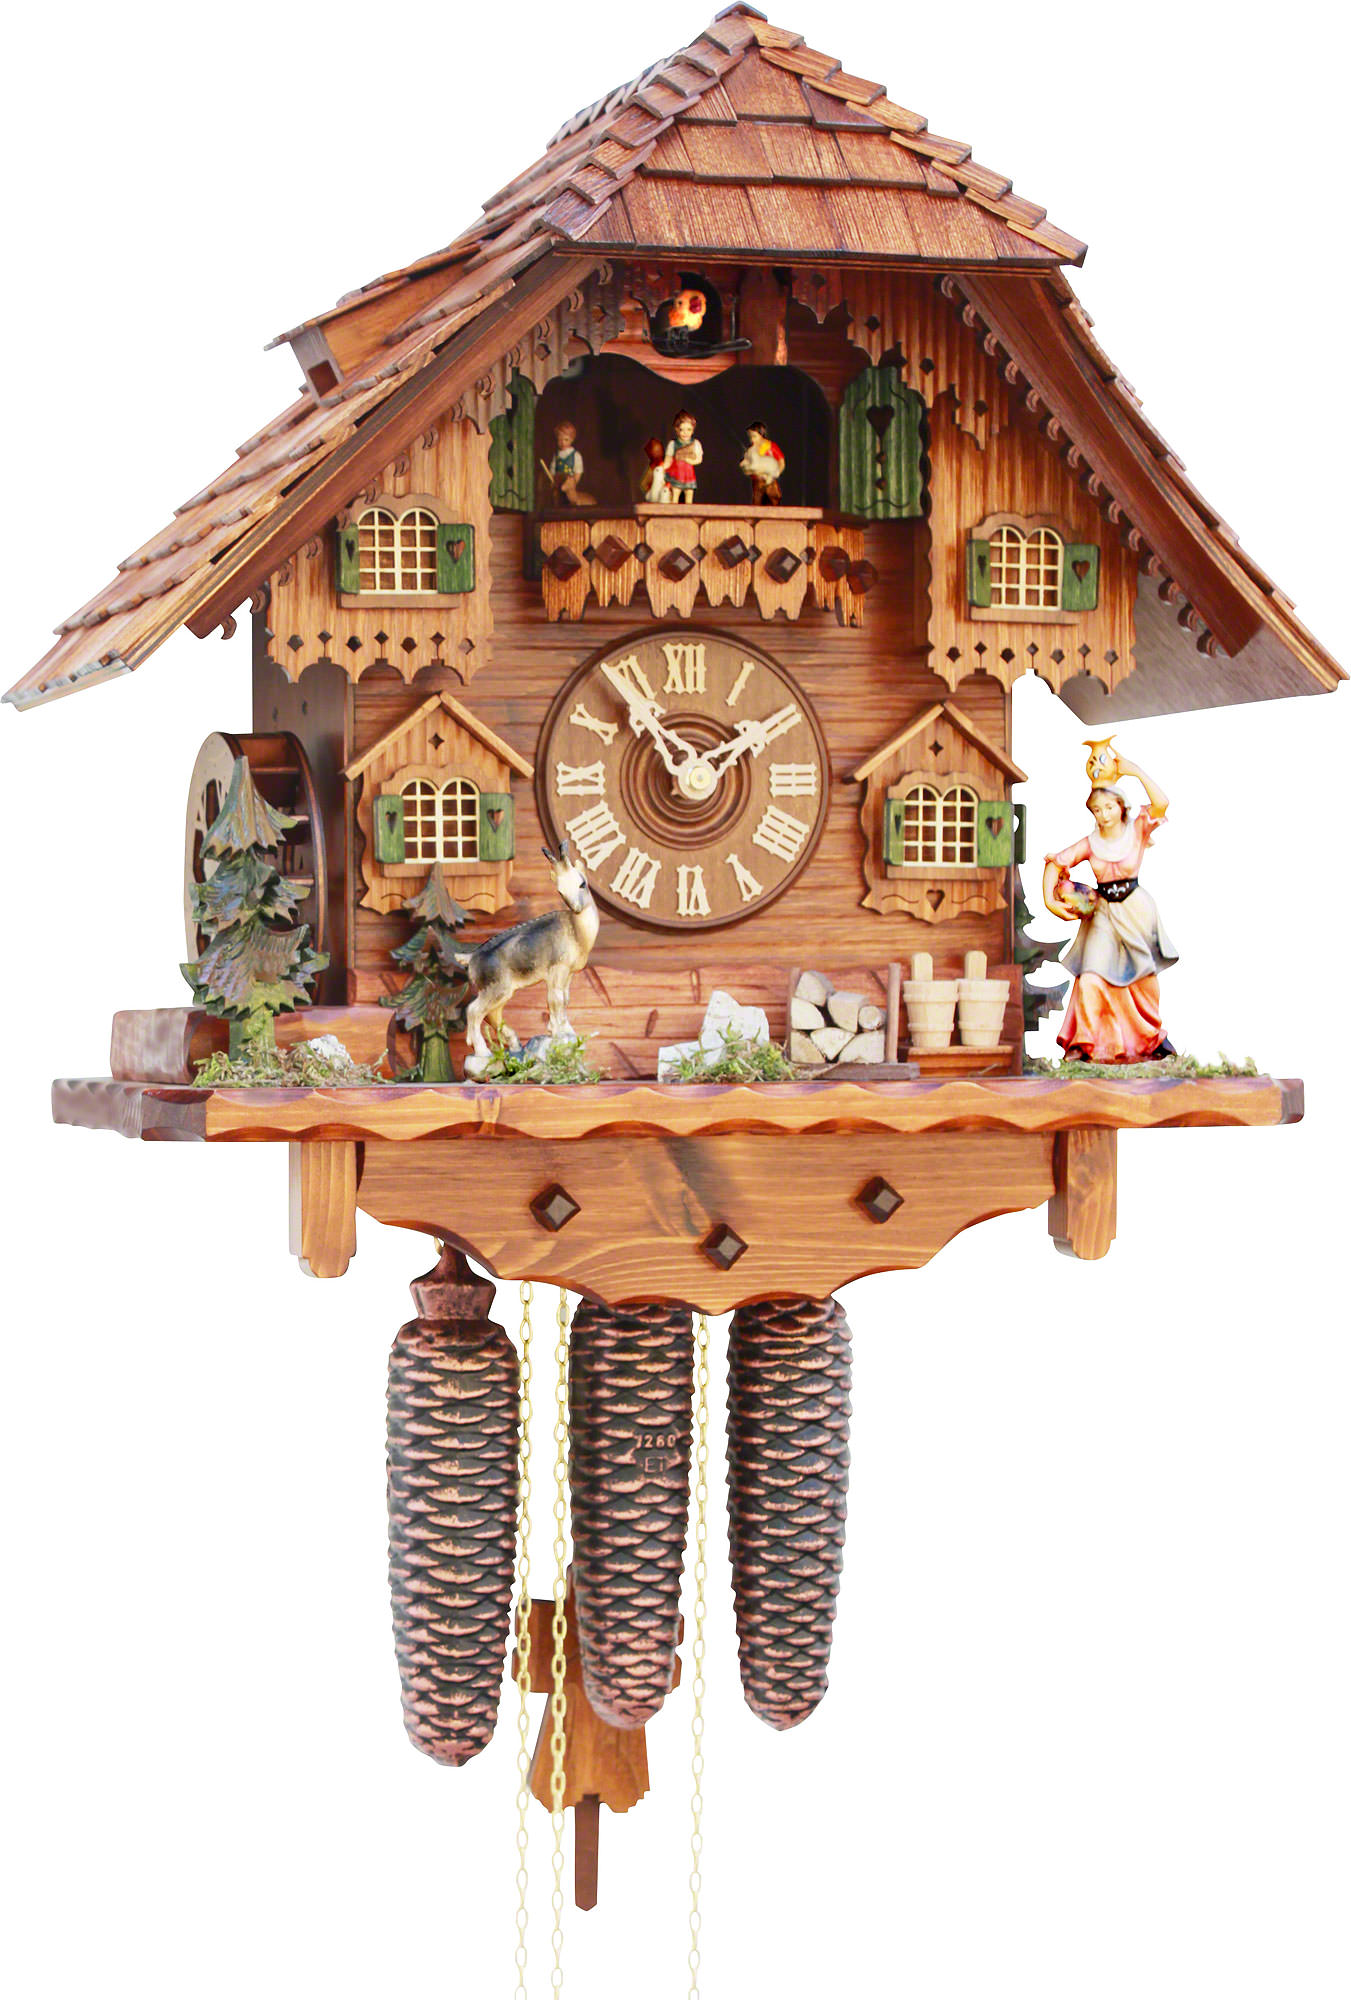 Cuckoo clock 8 day movement chalet style 42cm by rombach How to make a cuckoo clock